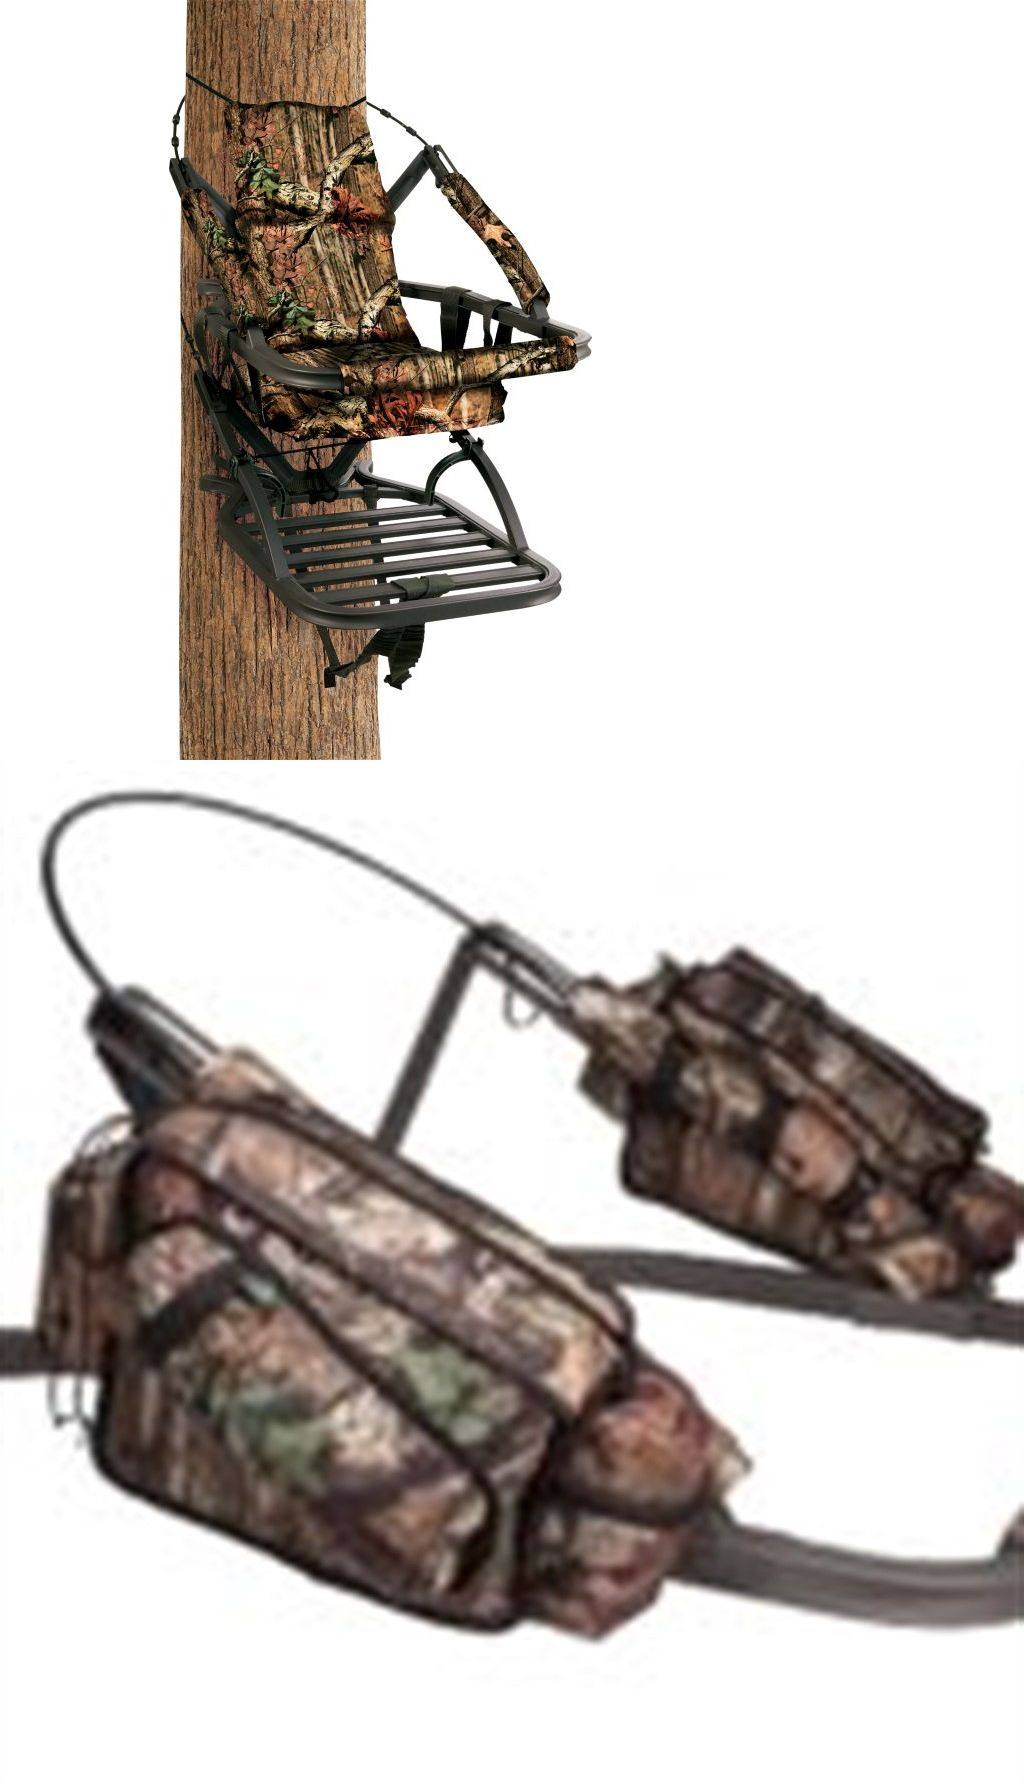 Blinds And Treestands 177909 Summit 81565 Viper Deluxe Sd Climbing Tree Stand W Free Side Bags 60 It Now Only 269 99 On Ebay